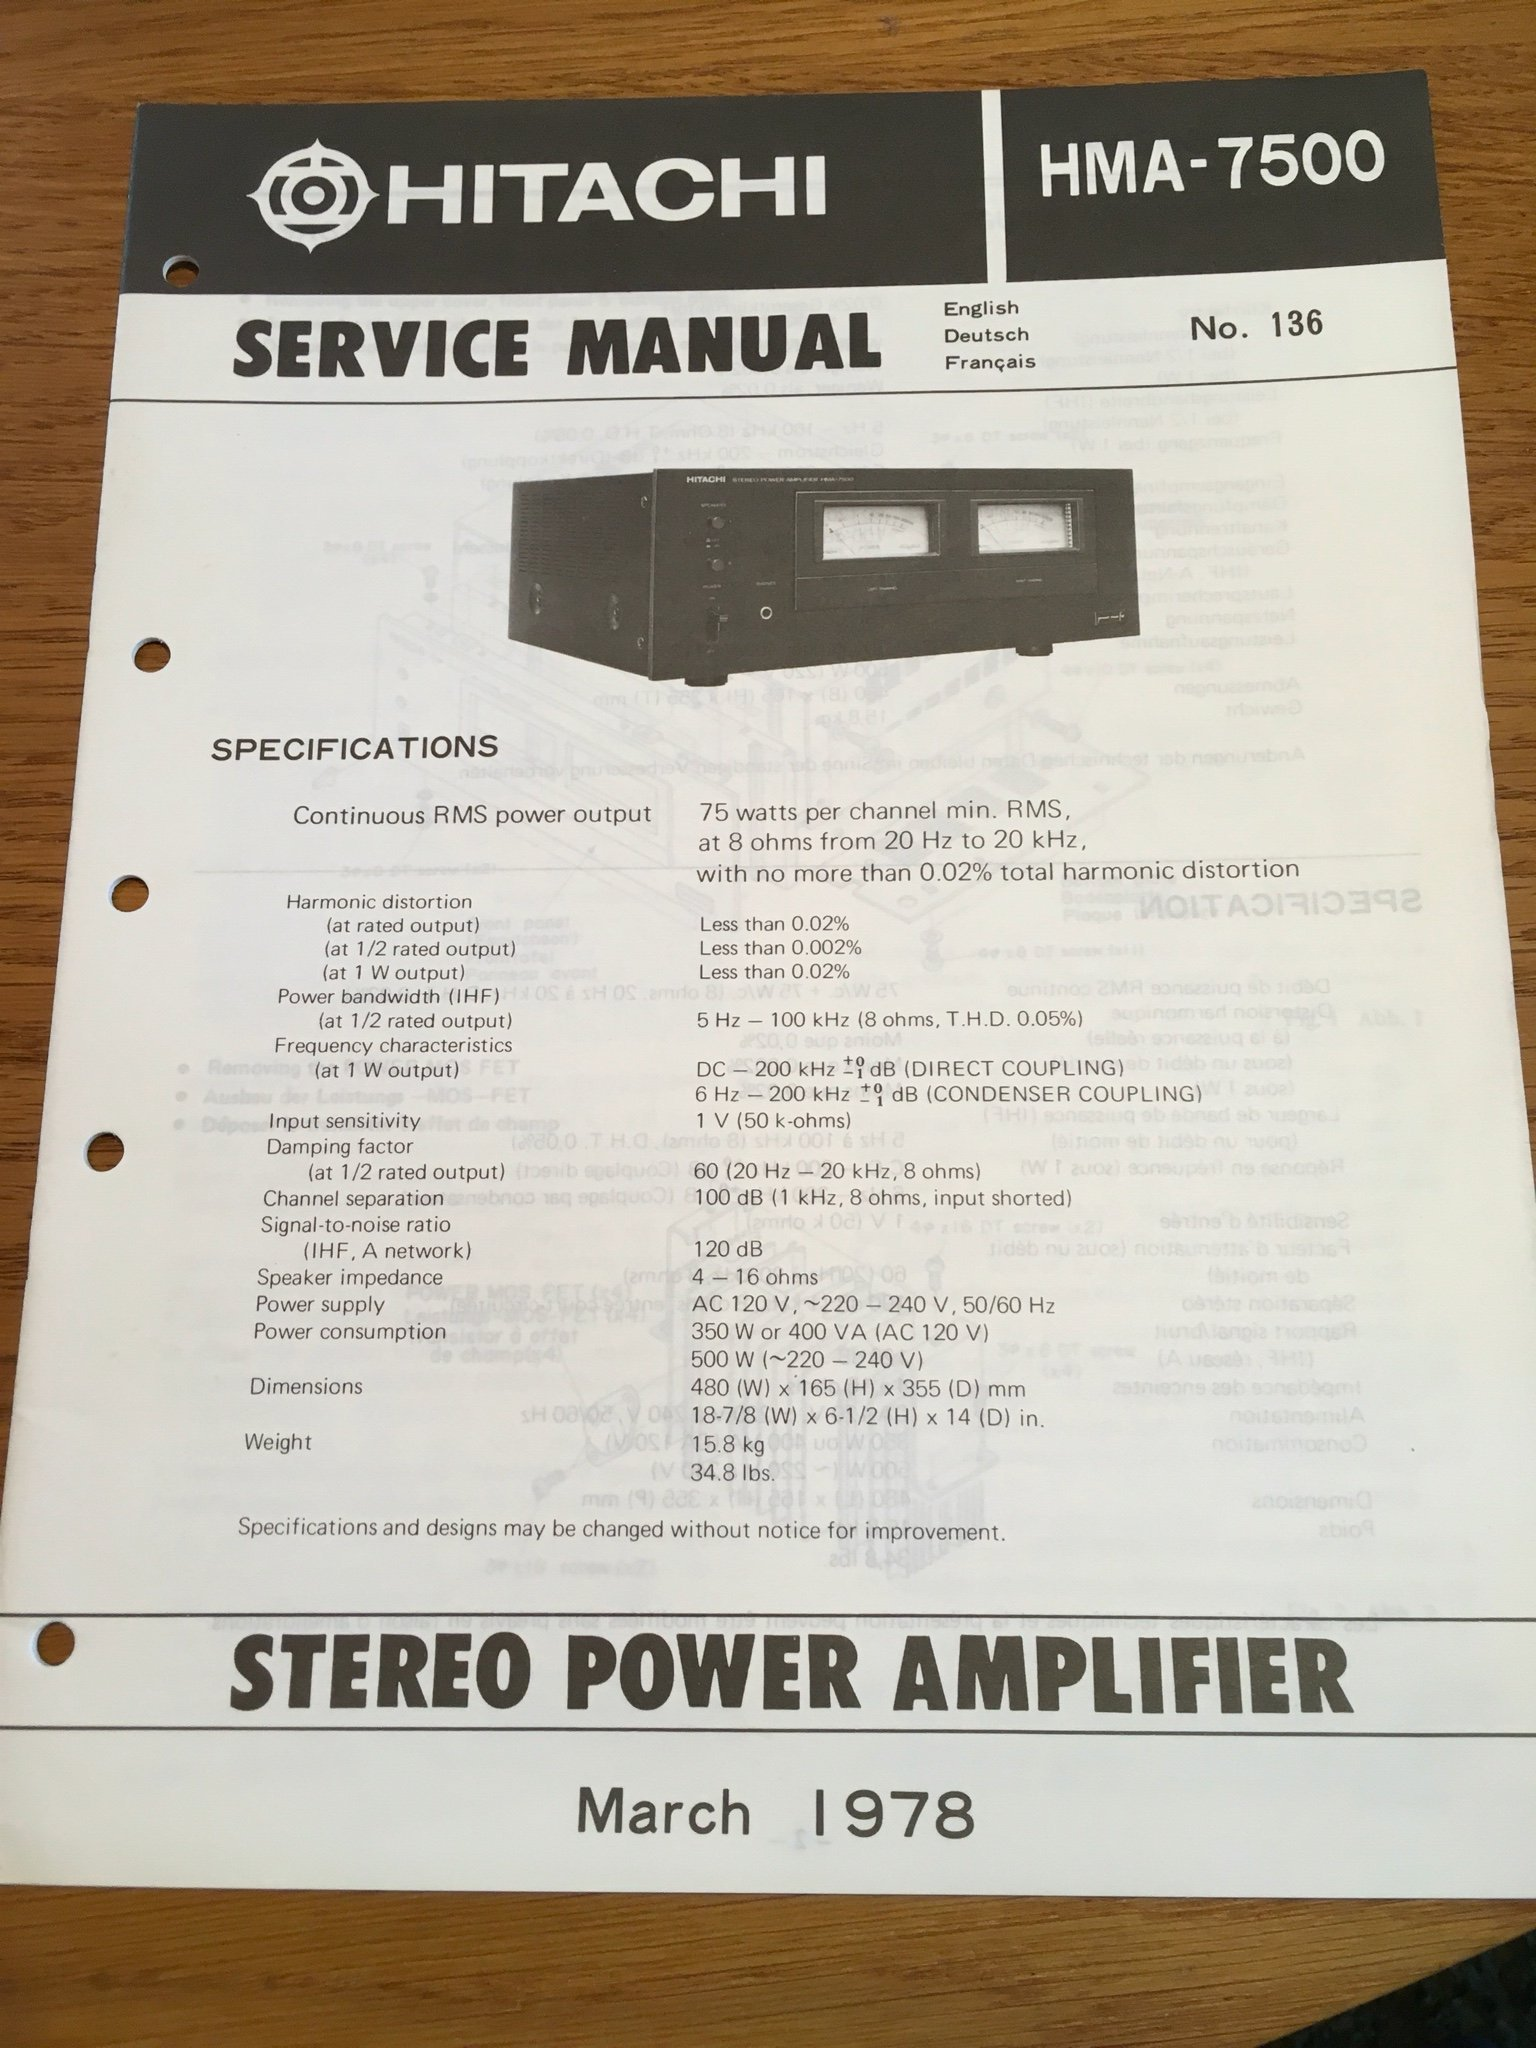 Service Manual Hitachi HMA-7500